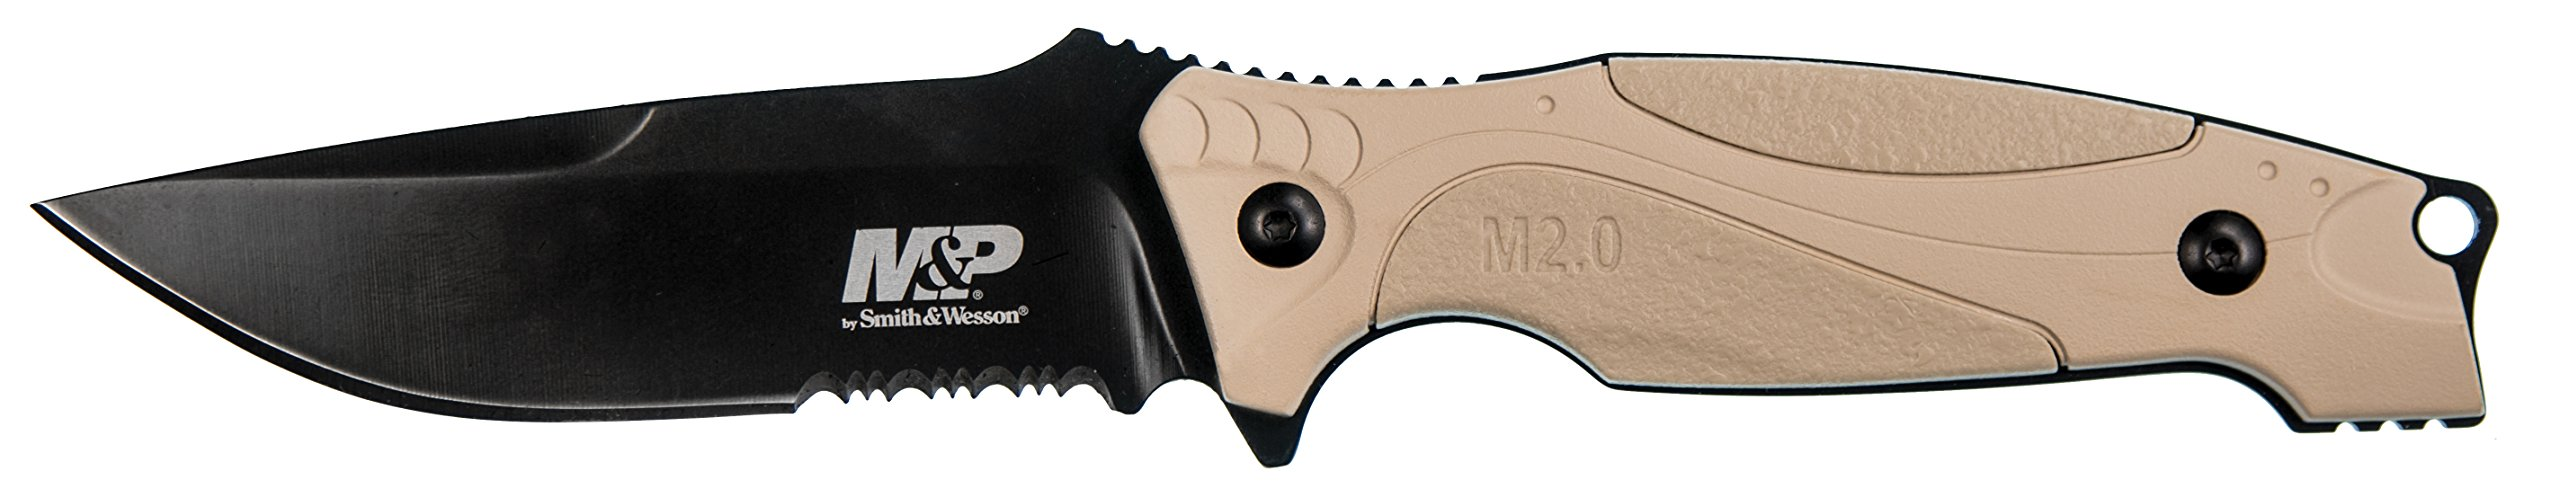 Smith & Wesson M&P M2.0 9in S.S. Full Tang Thin Fixed Blade Knife with 4in Drop Point Blade and Rubber FDE Handle for Outdoor Tactical Survival and Everyday Carry by Smith & Wesson (Image #1)